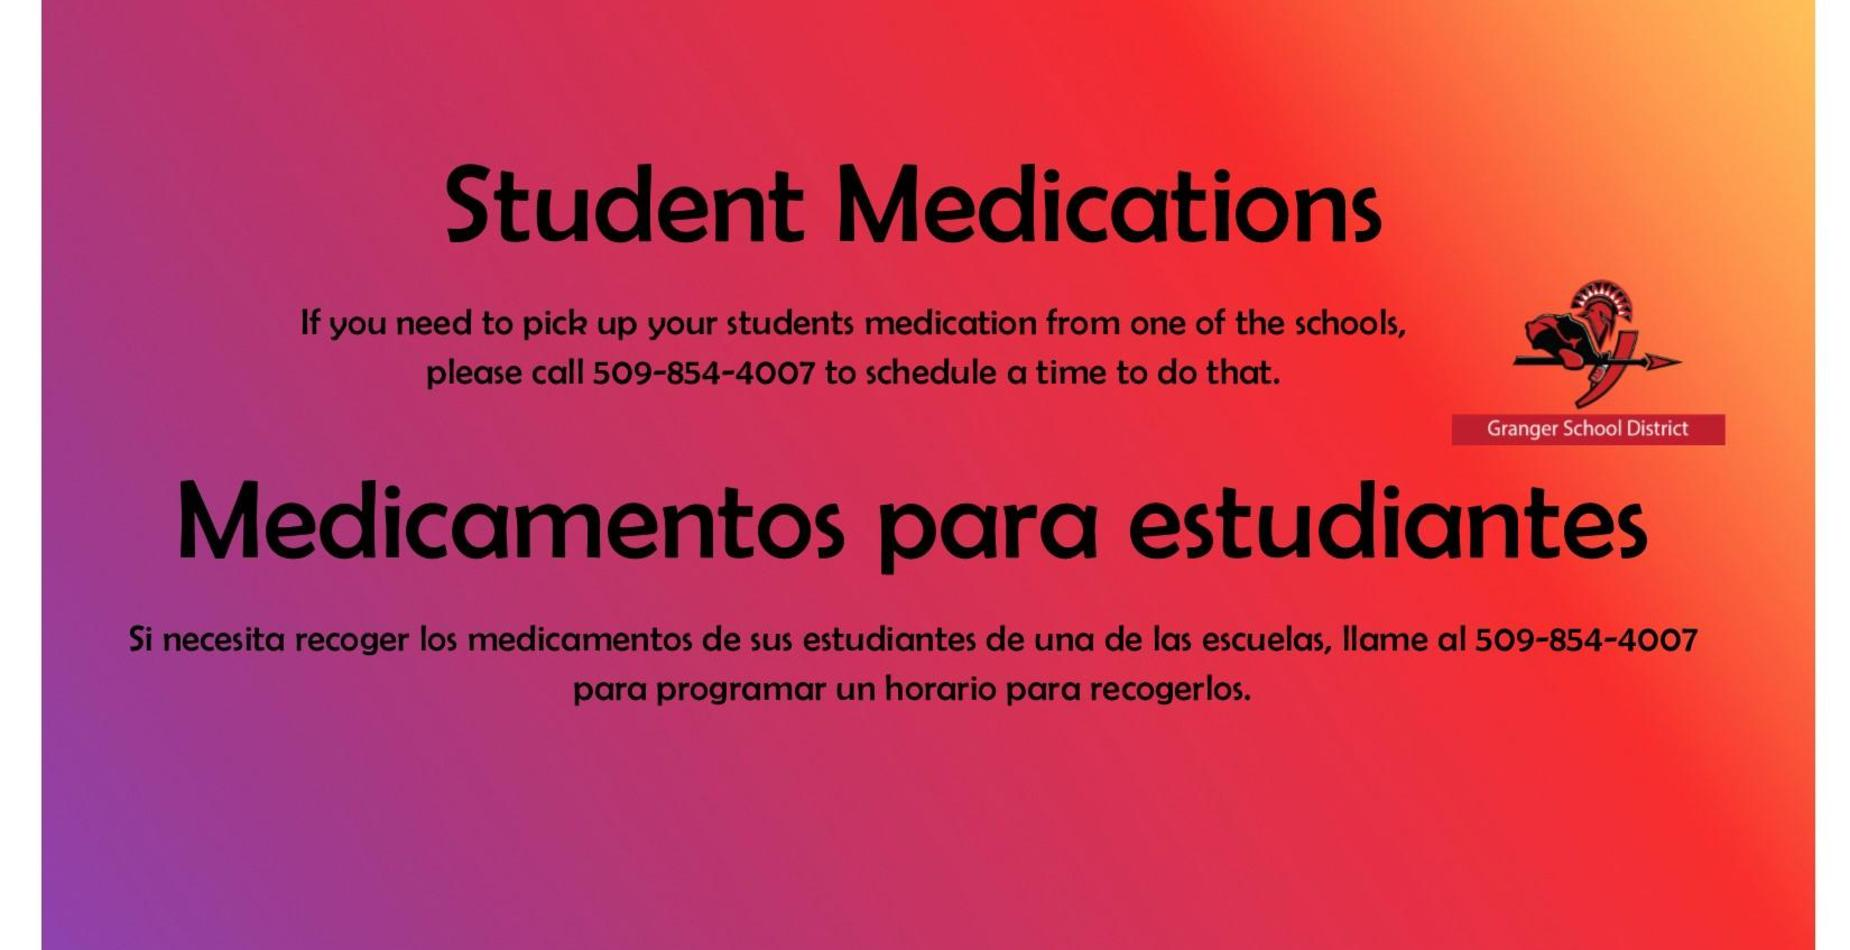 picture of student medication information